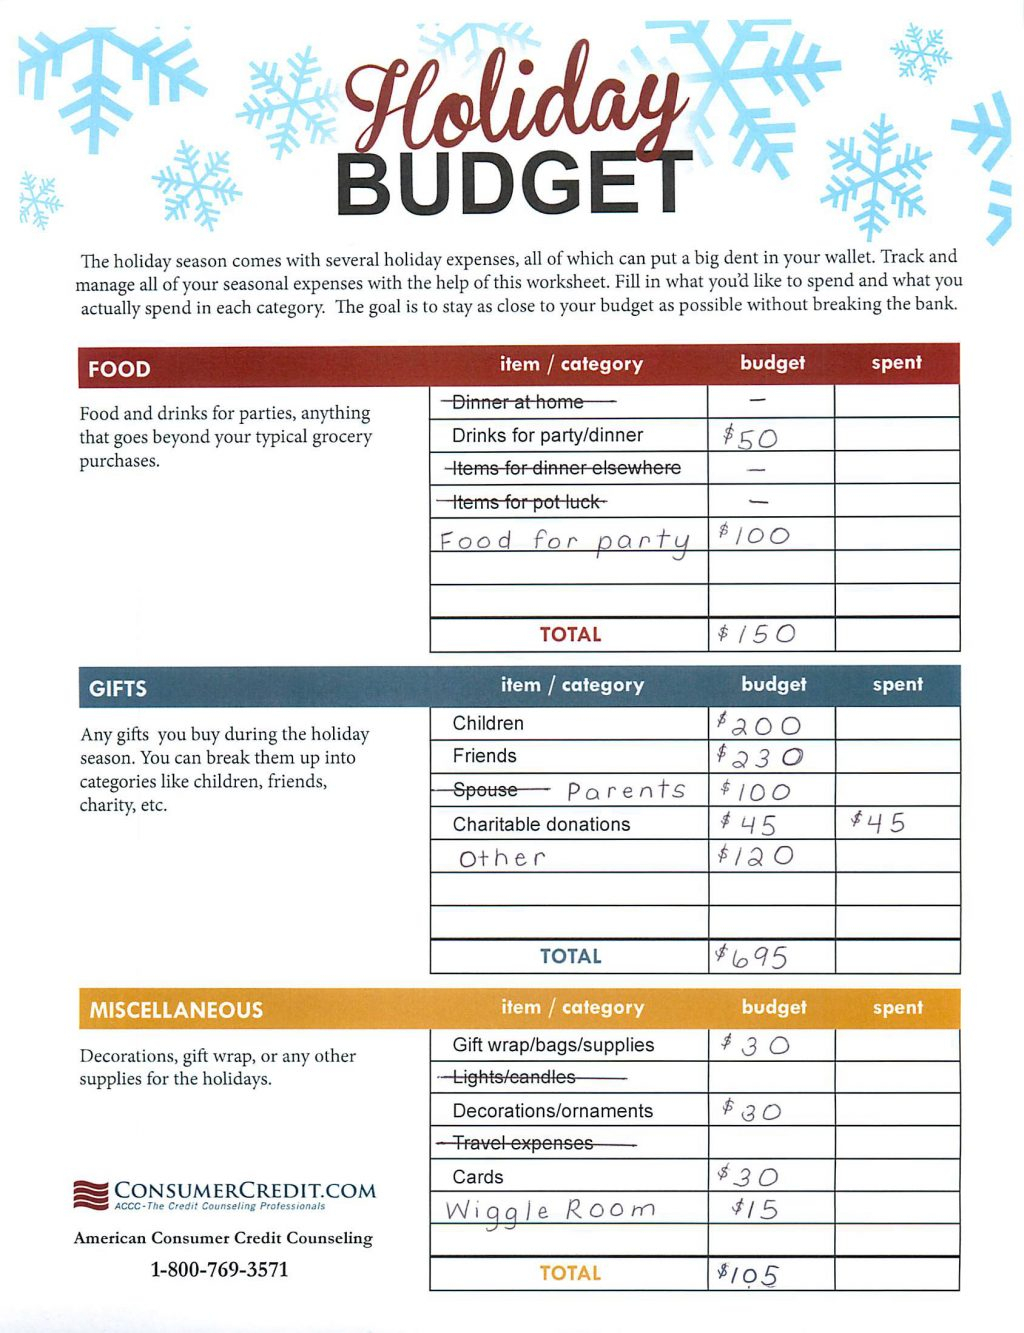 Christmas Present Spreadsheet In Christmas Budget Worksheet Selo L Ink Co Example Of Spreadsheet